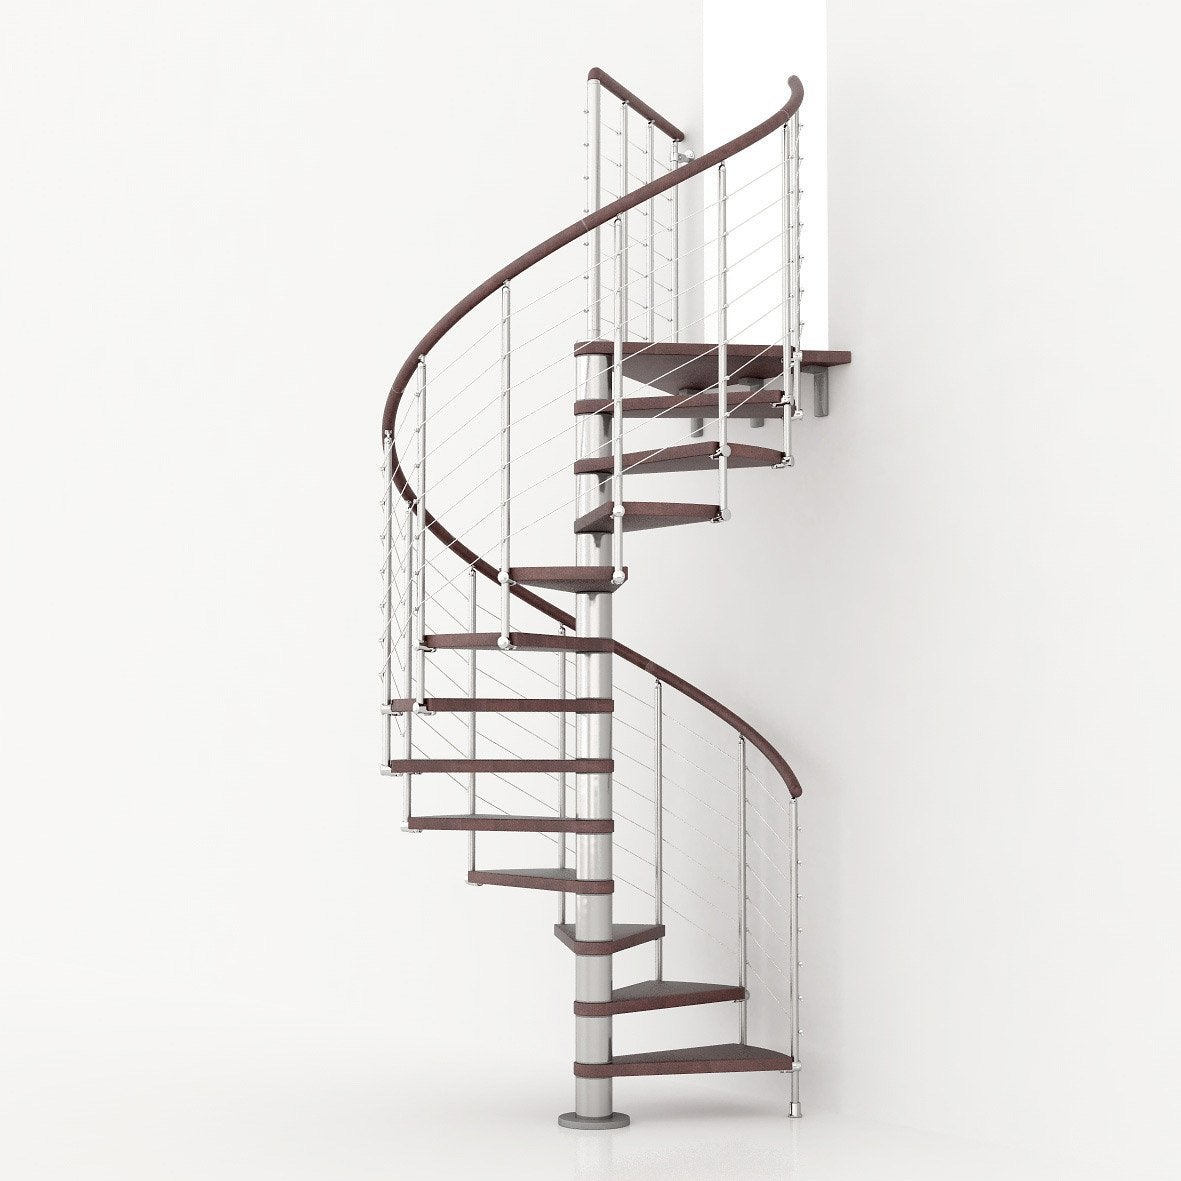 Escalier colima on rond ring line marches bois structure m tal chrom ler - Escalier escamotable leroy merlin ...